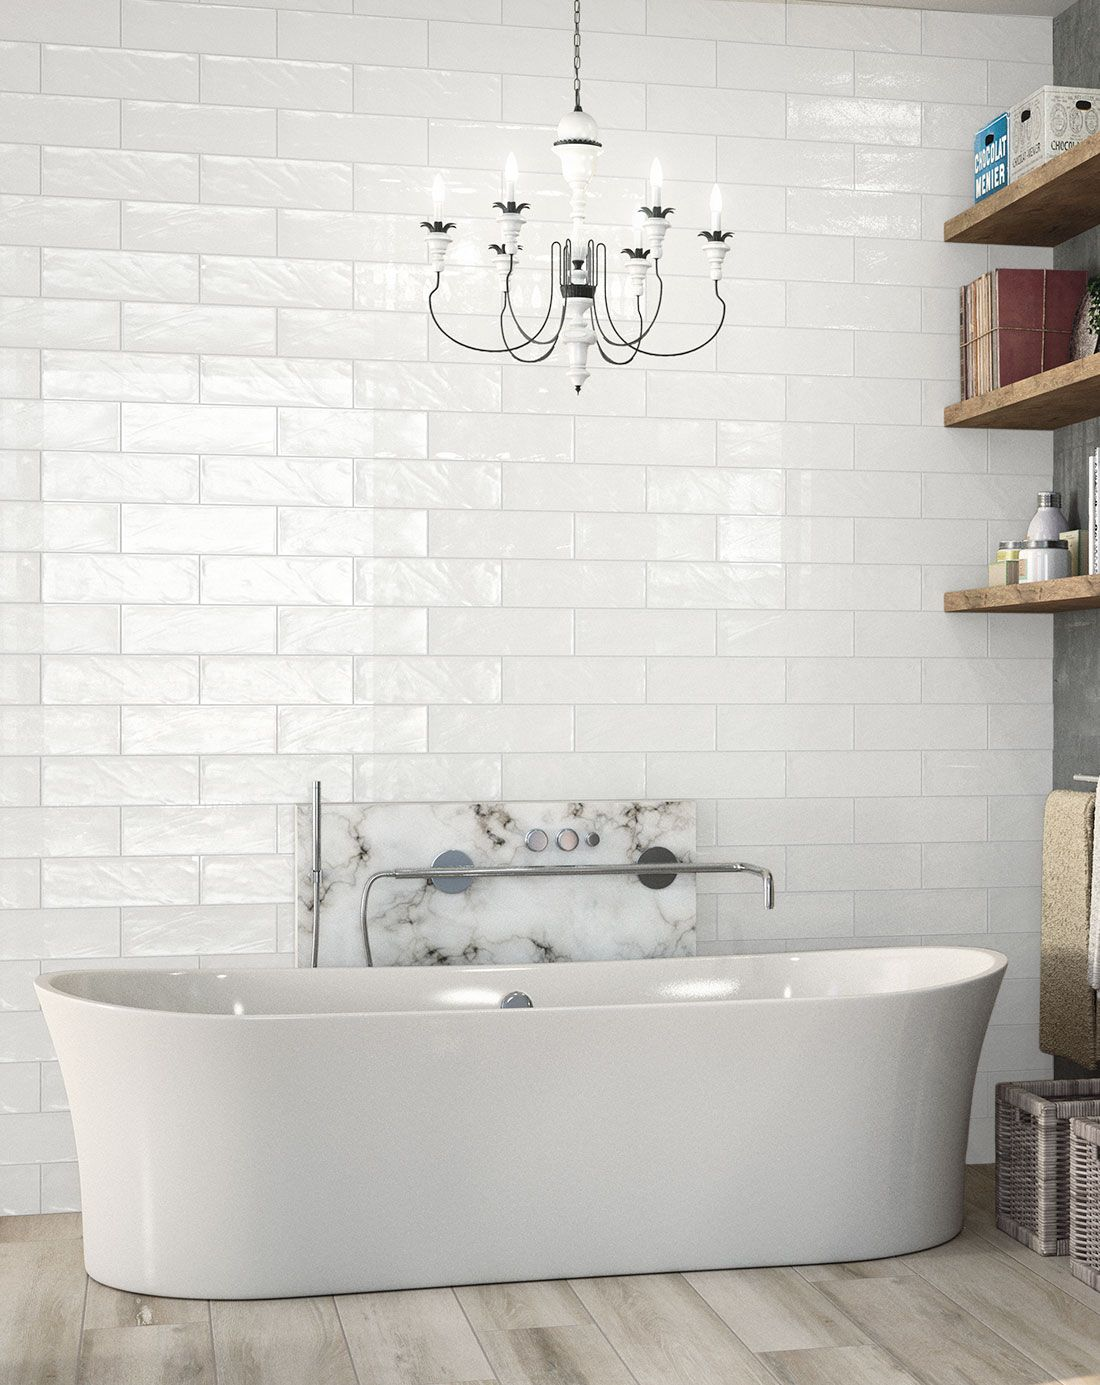 Hervorragend Bulevar Ripple Antique White Ceramic Wall Tile Has A Simple Design